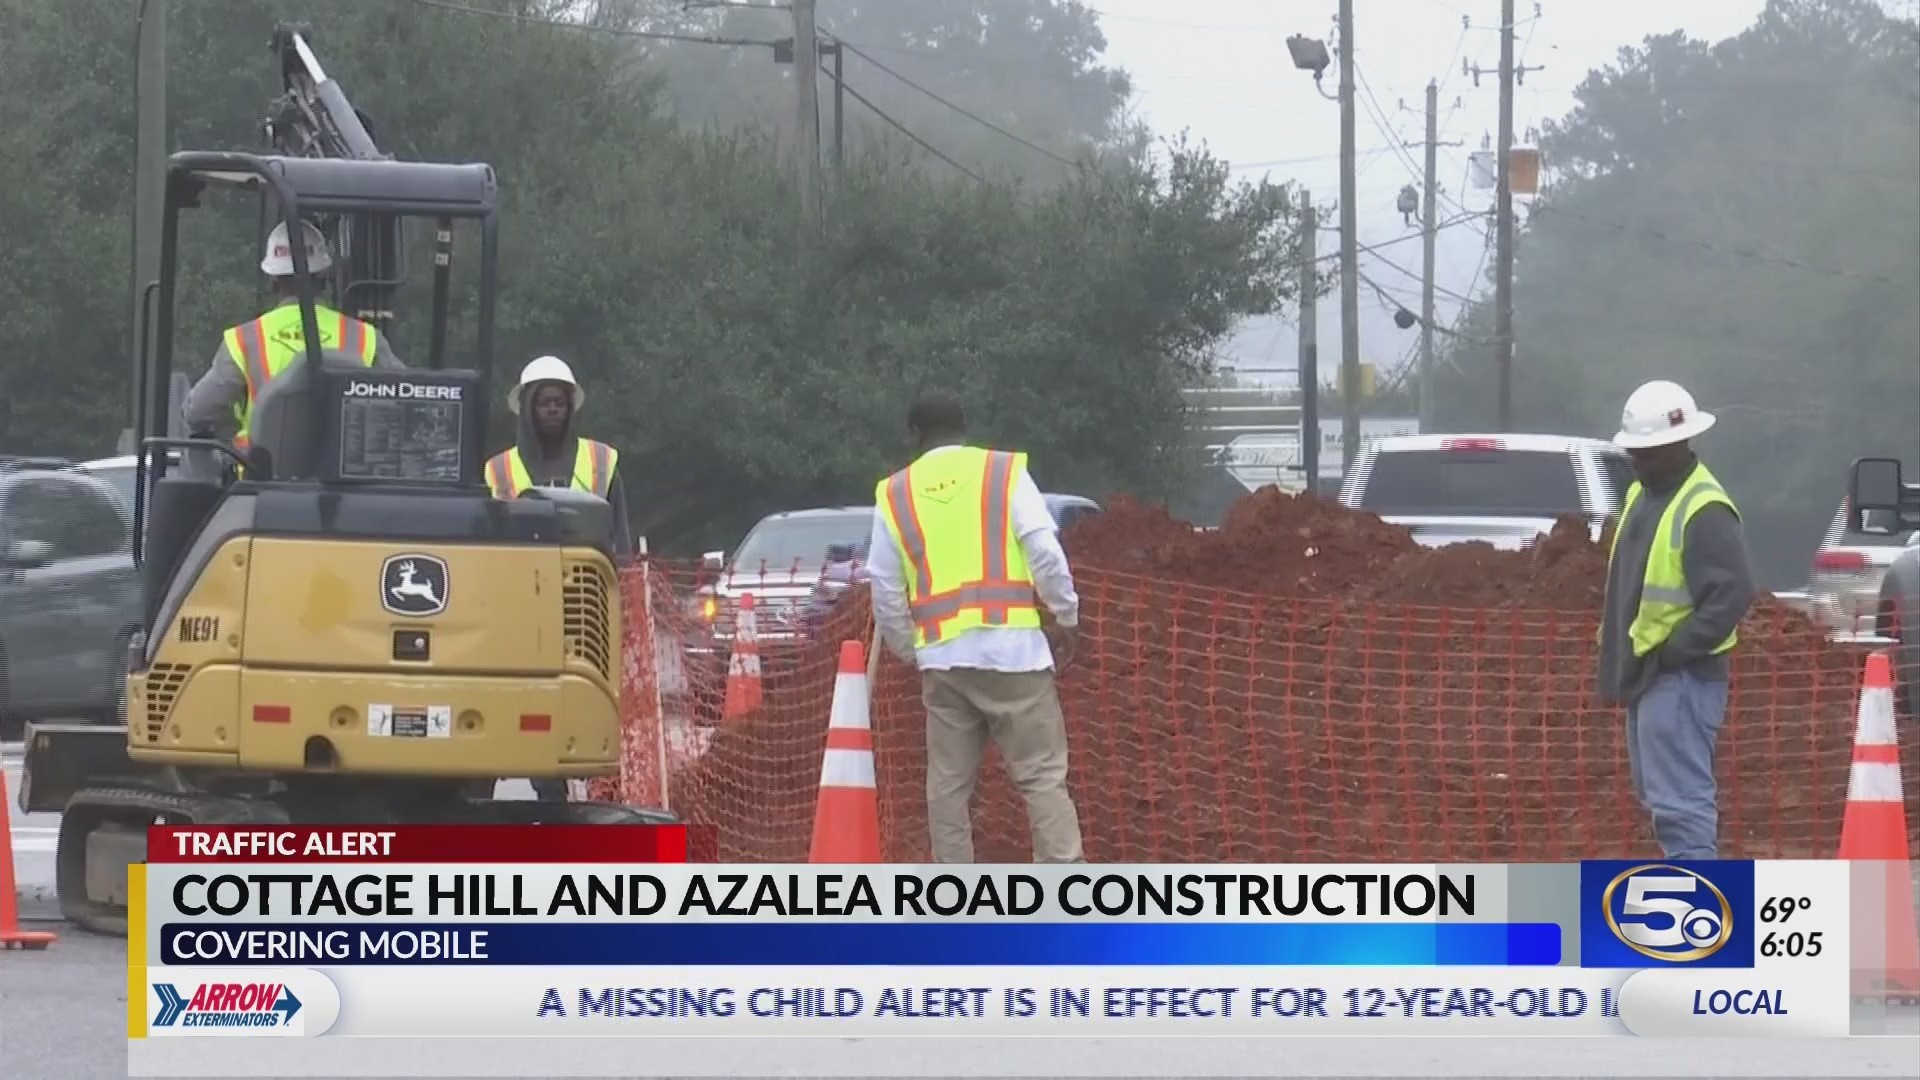 VIDEO: Expect delays at Cottage Hill and Azalea Roads as utility work begins Monday